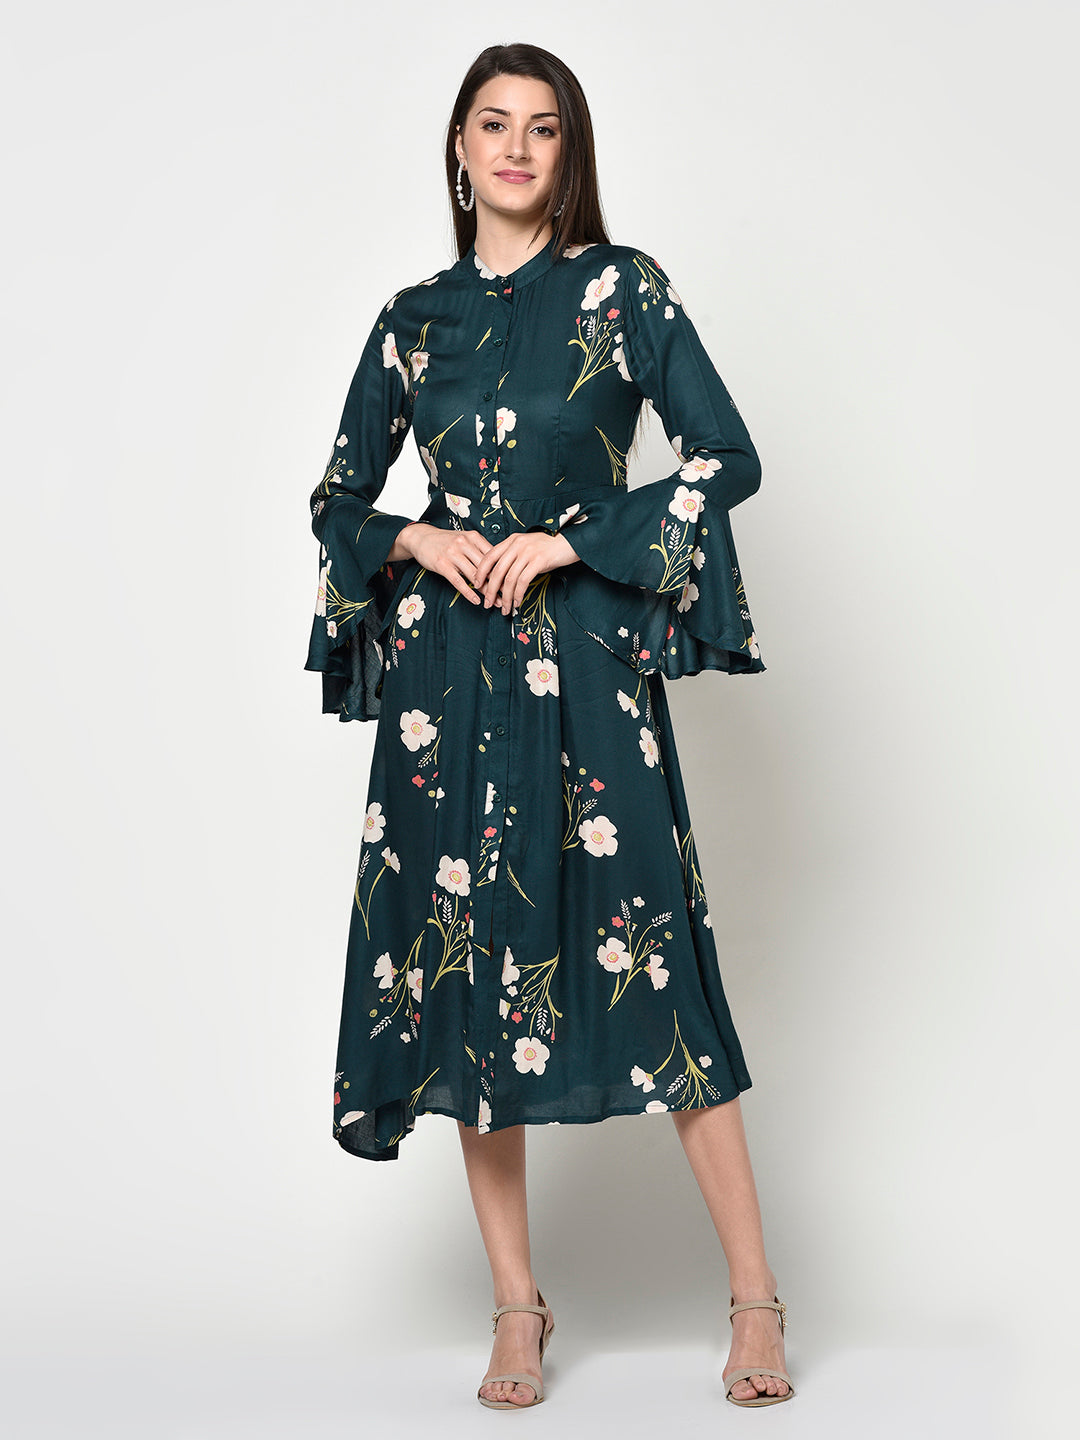 Ladies Floral Ruffle Front Button Dress - Avsoy